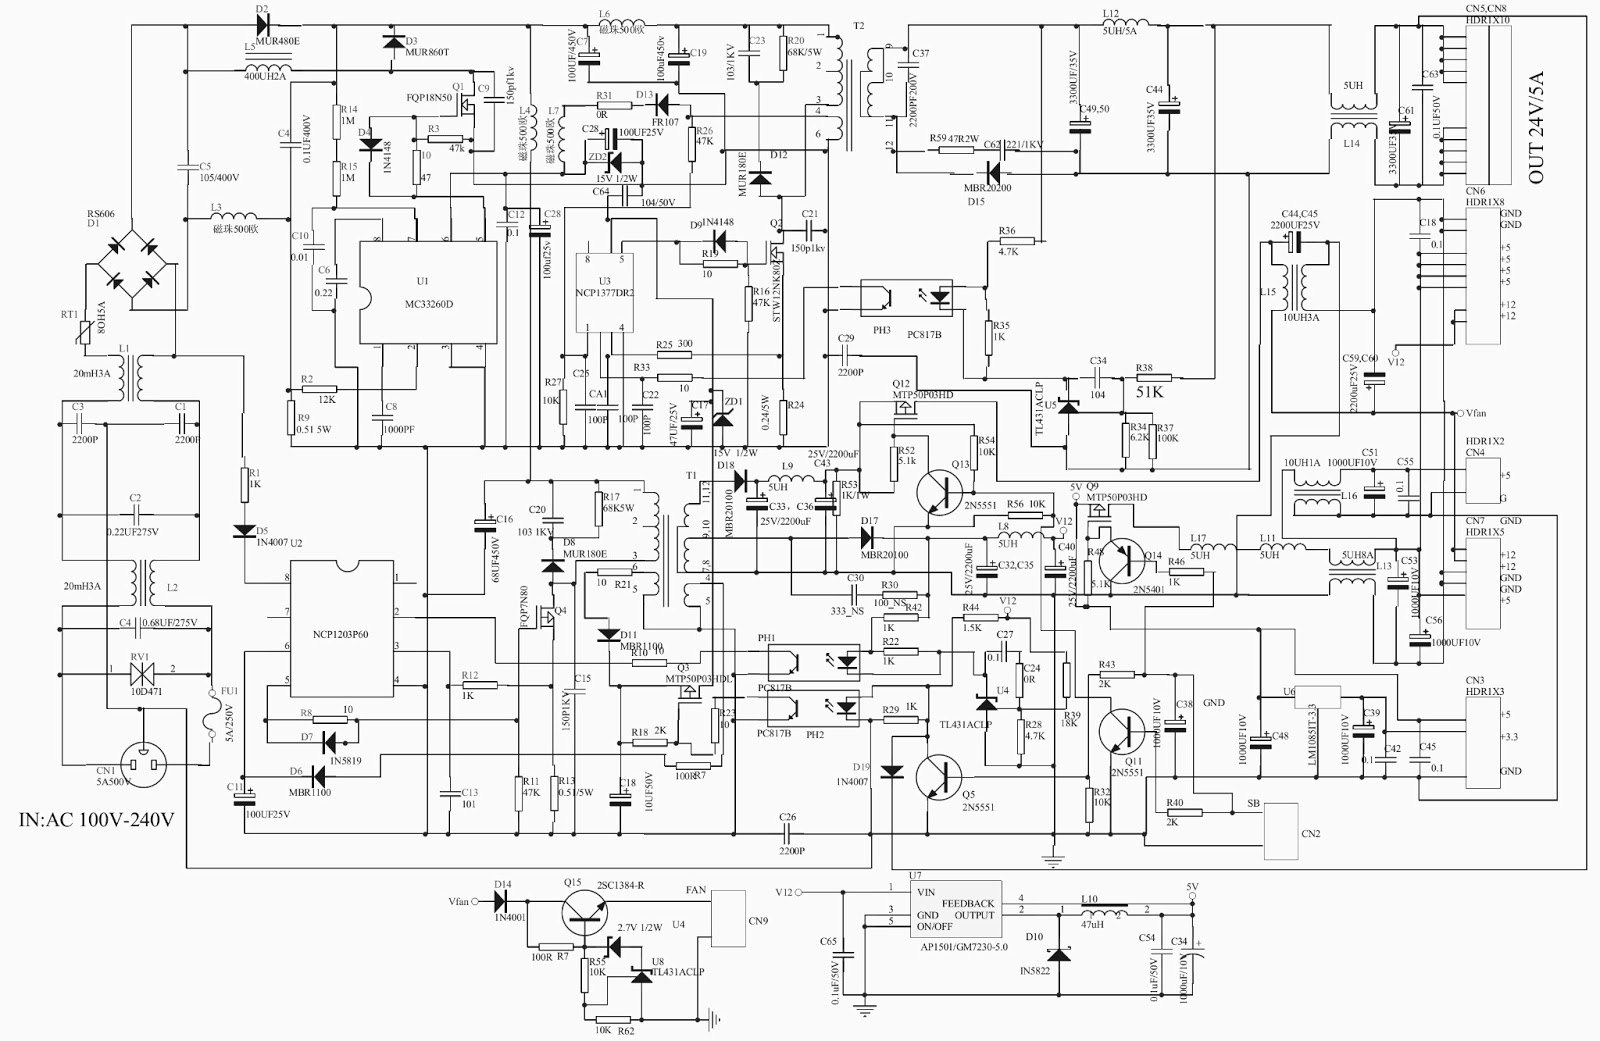 Whirlpool Microwave Schematic Diagram Not Lossing Wiring Schematics Sharp Diagrams Get Free Image About Oven Parts